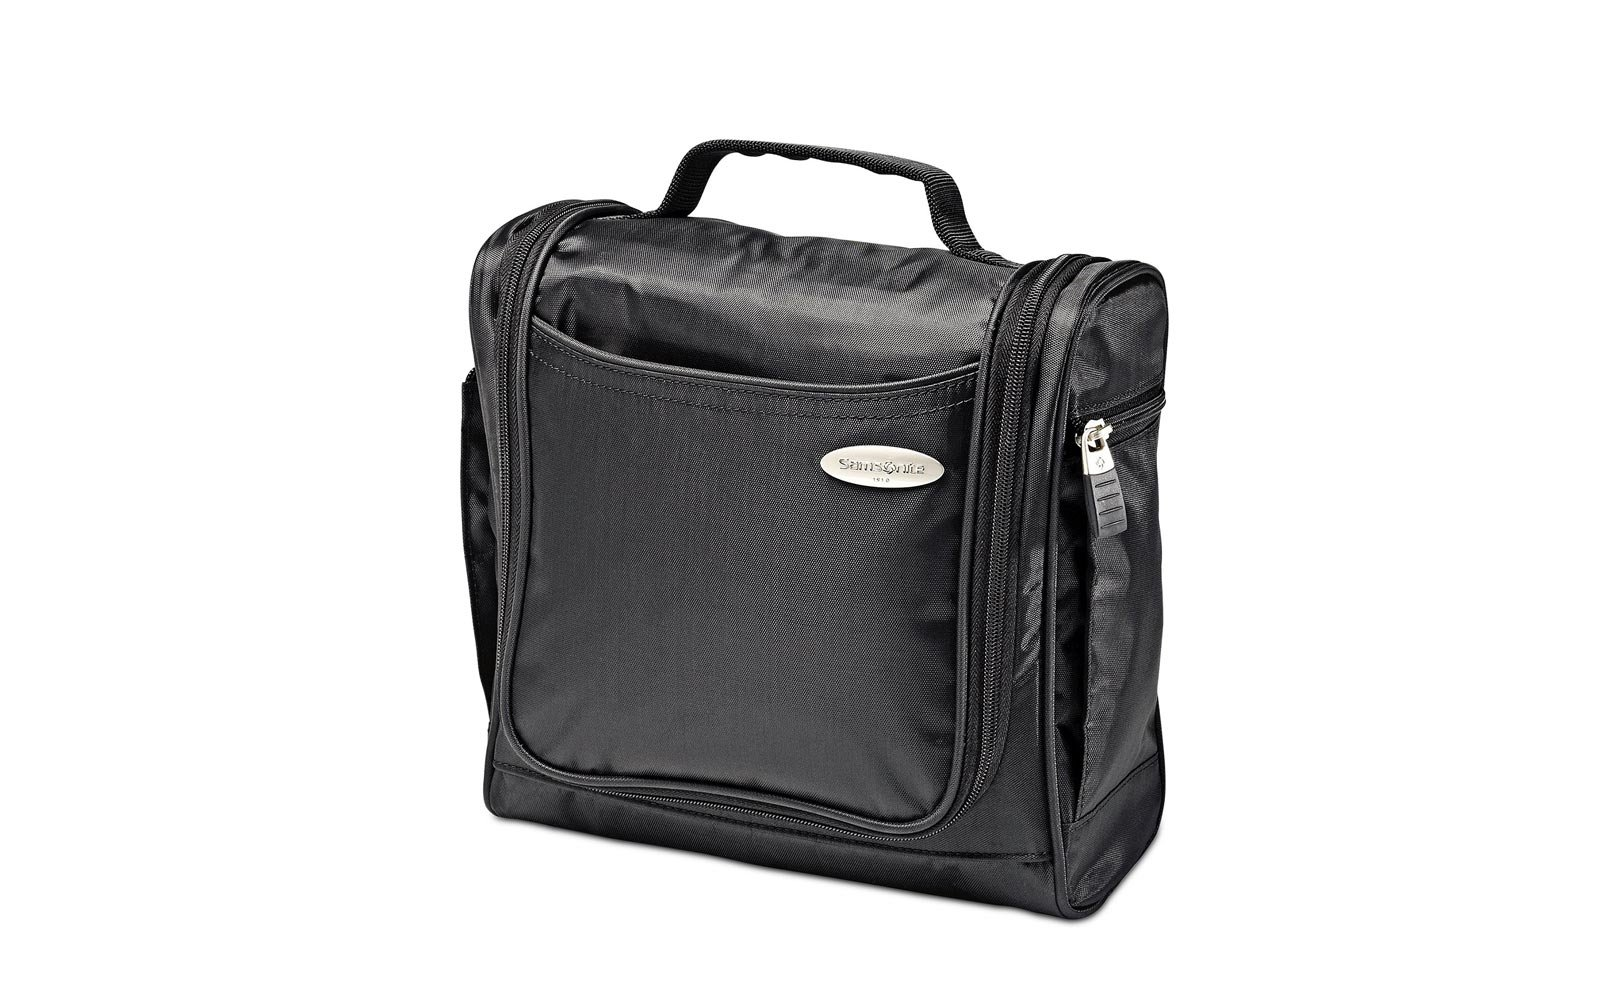 Samsonite Travel Toiletry Kit